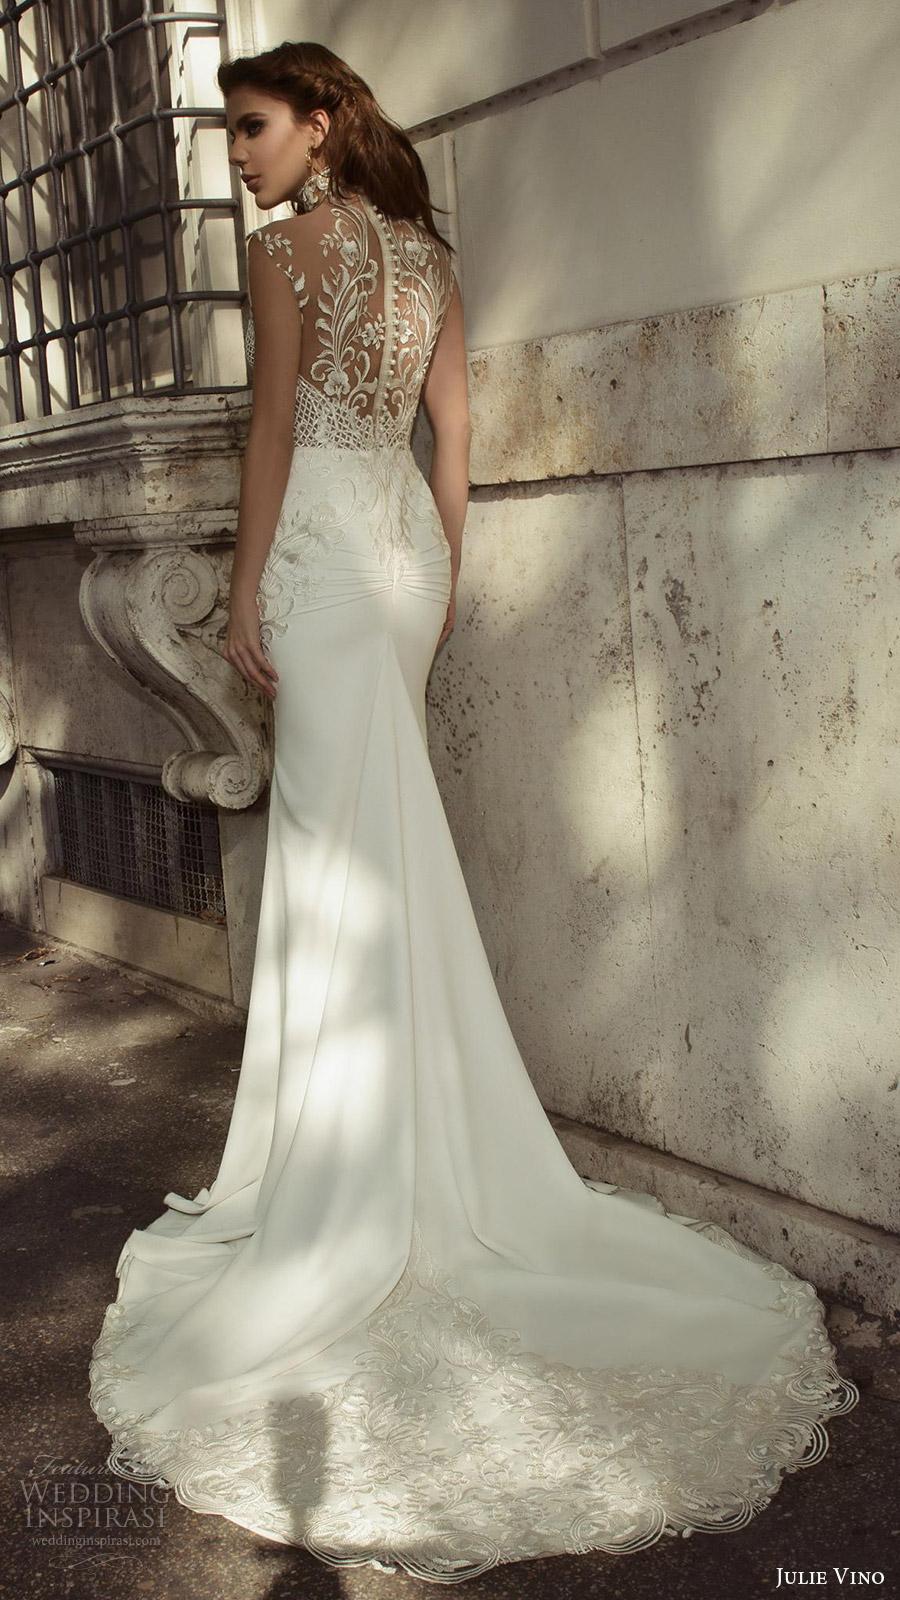 julie vino bridal spring 2017 sleeveless sweetheart illusion high neck sheath wedding dress (octavia) bv sheer back train